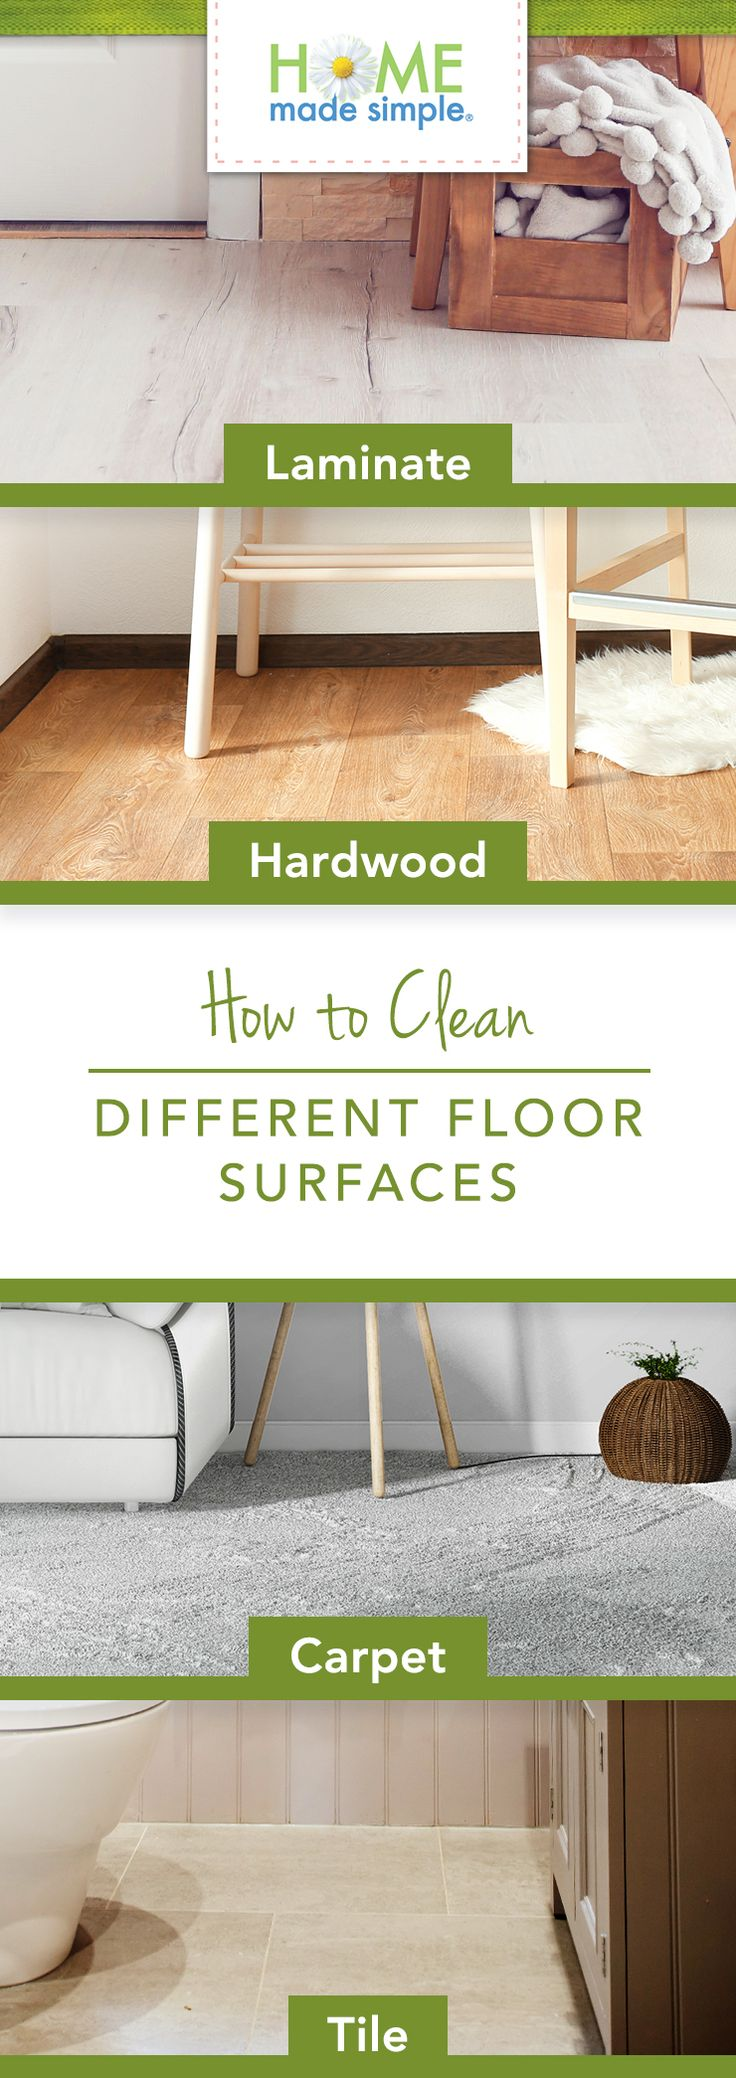 How to clean hardwood, laminate, tile and carpet floors. Bonus: Don't miss a spot with our room-by-room floor cleaning checklist. https://www.pgeveryday.com/home/home-decor/article/floor-cleaning-tips